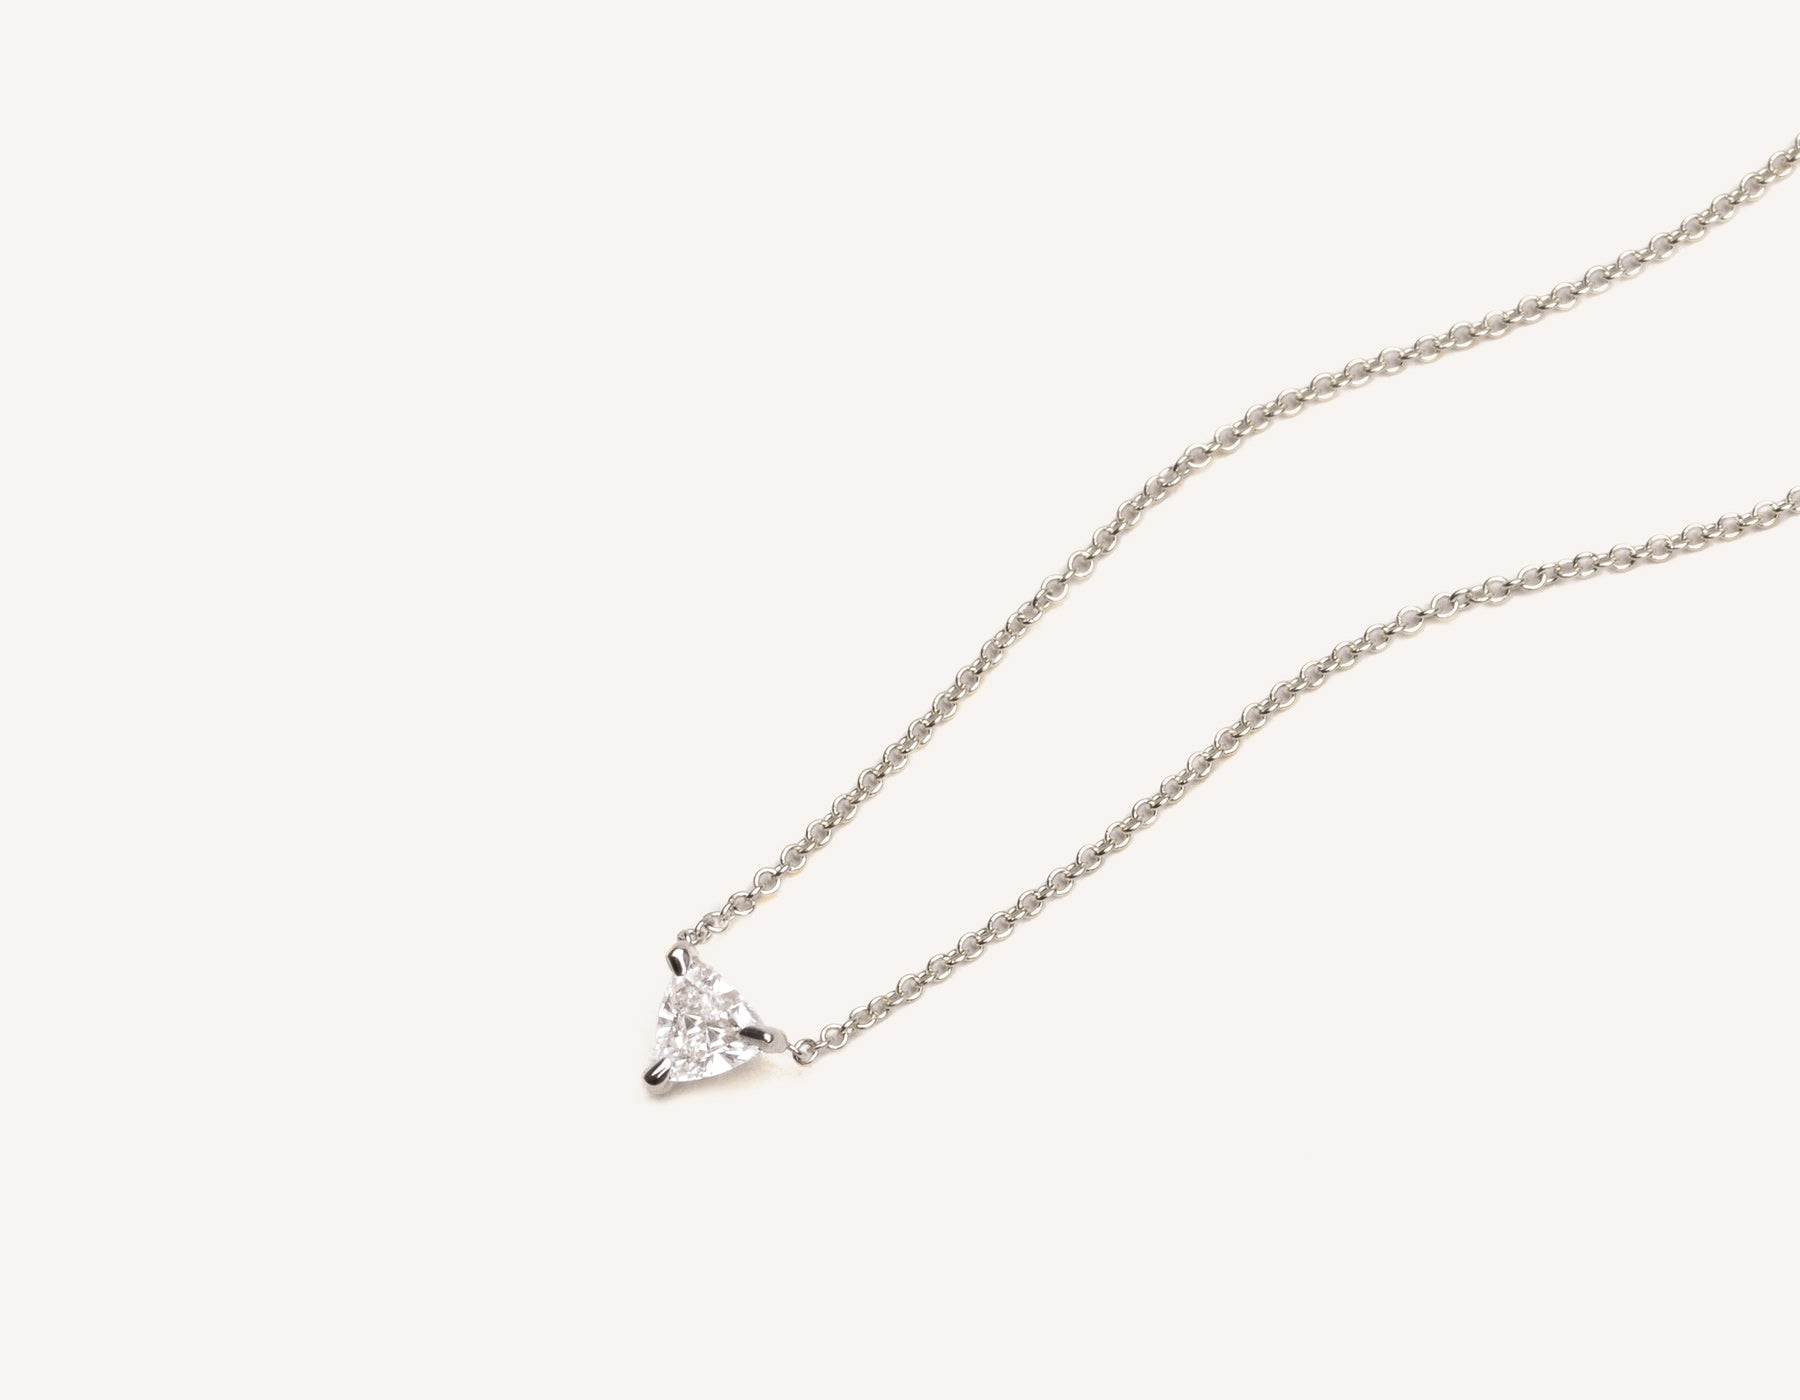 Close up of 14k solid gold Trillion Diamond Necklace with triangle diamond on simple chain by Vrai & Oro modern minimalist jewelry, 14K White Gold